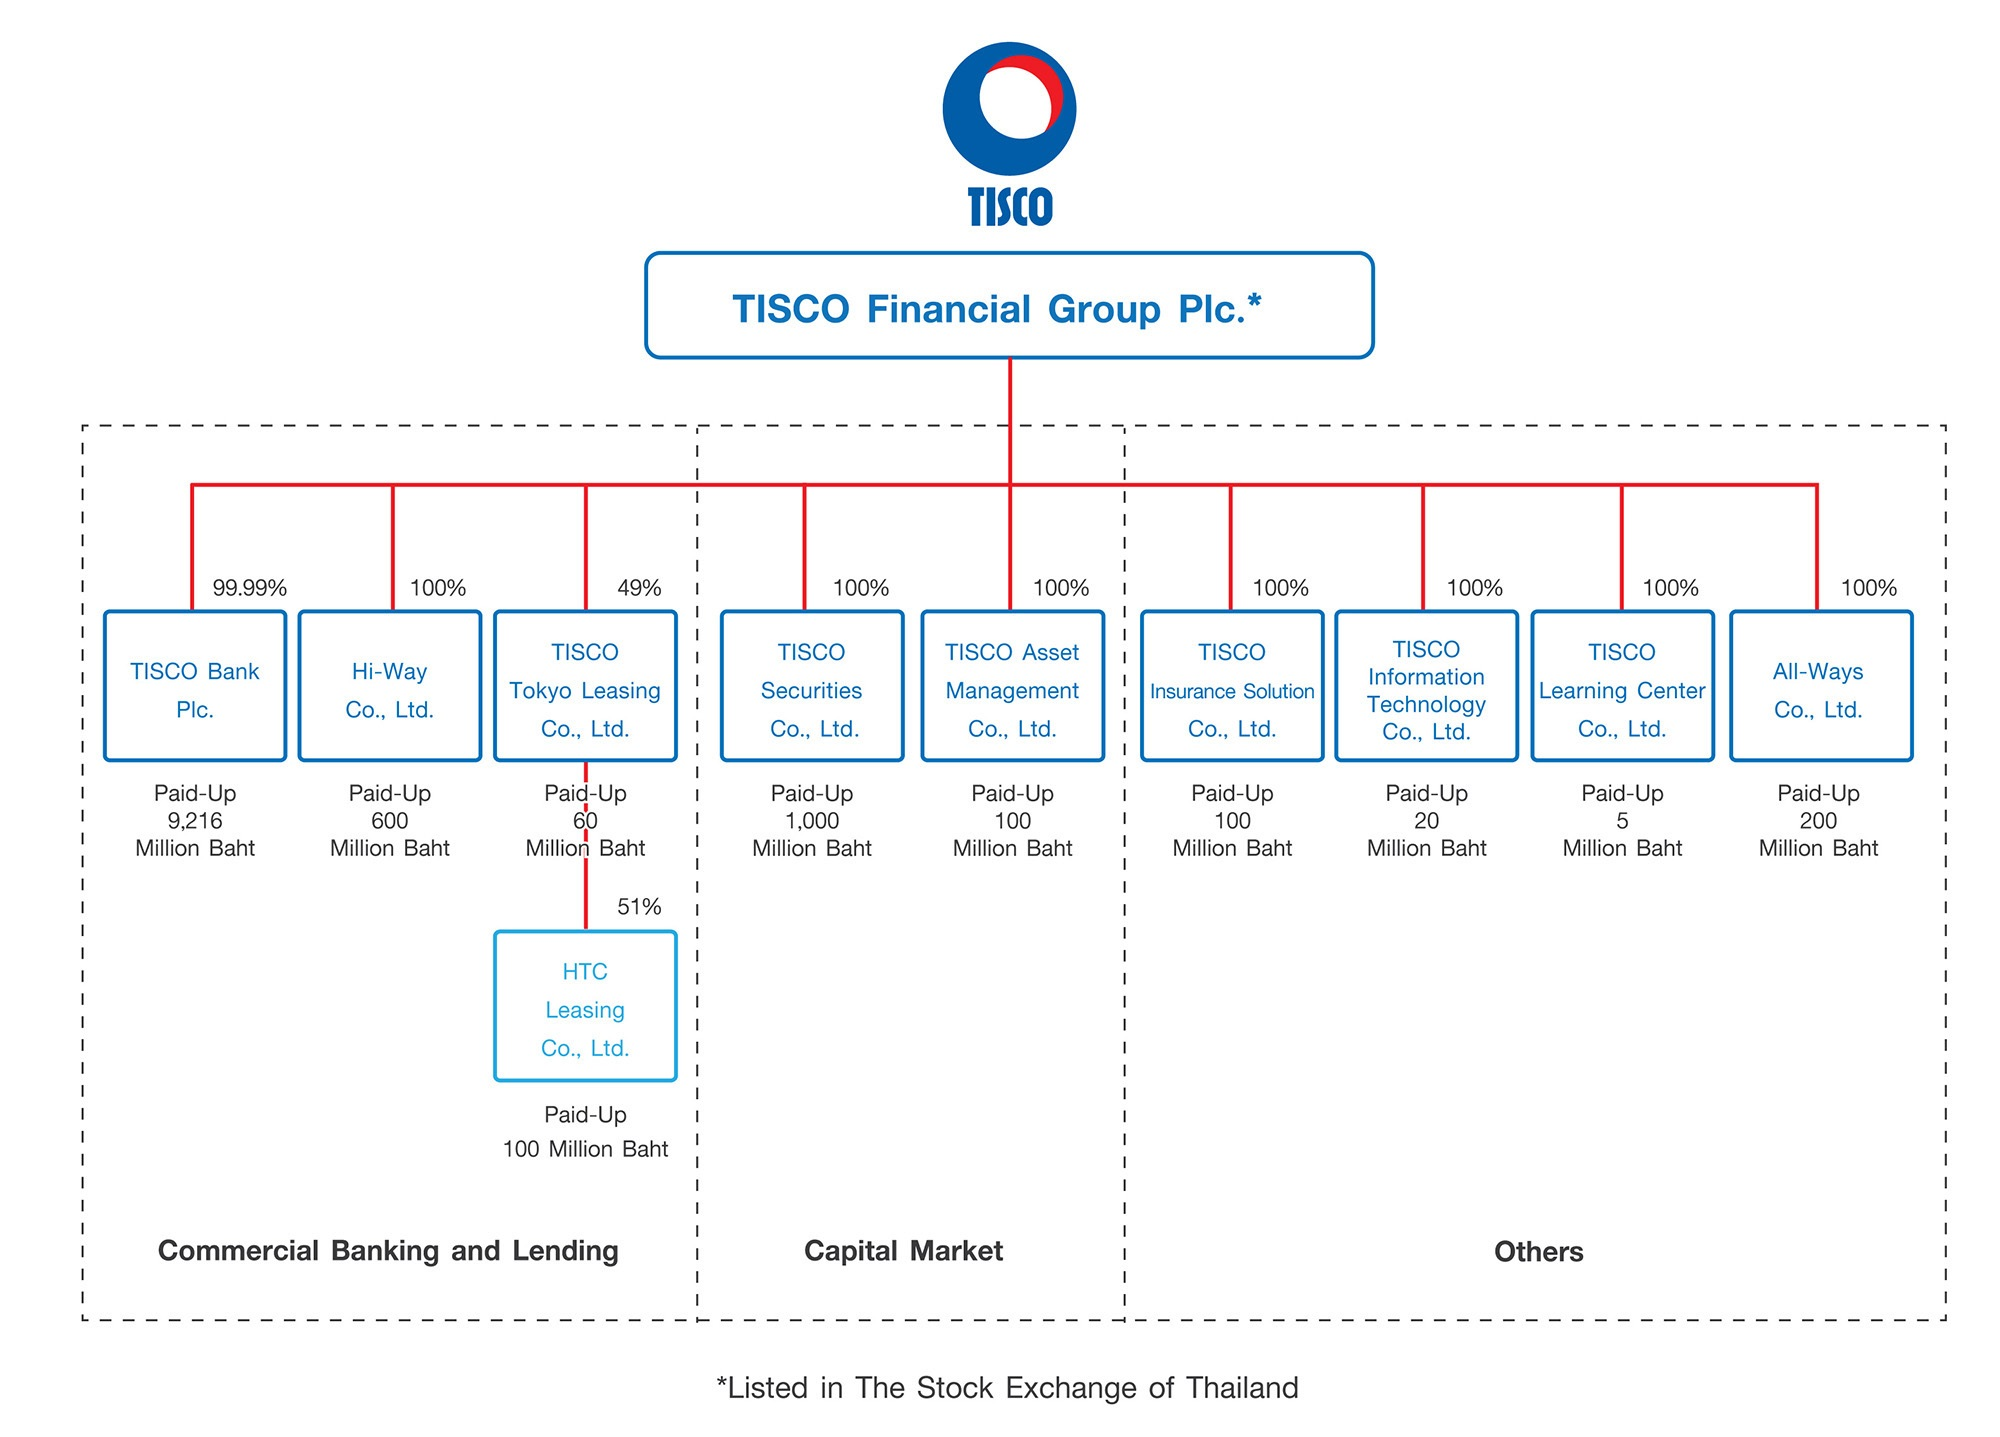 TISCO Group Structure